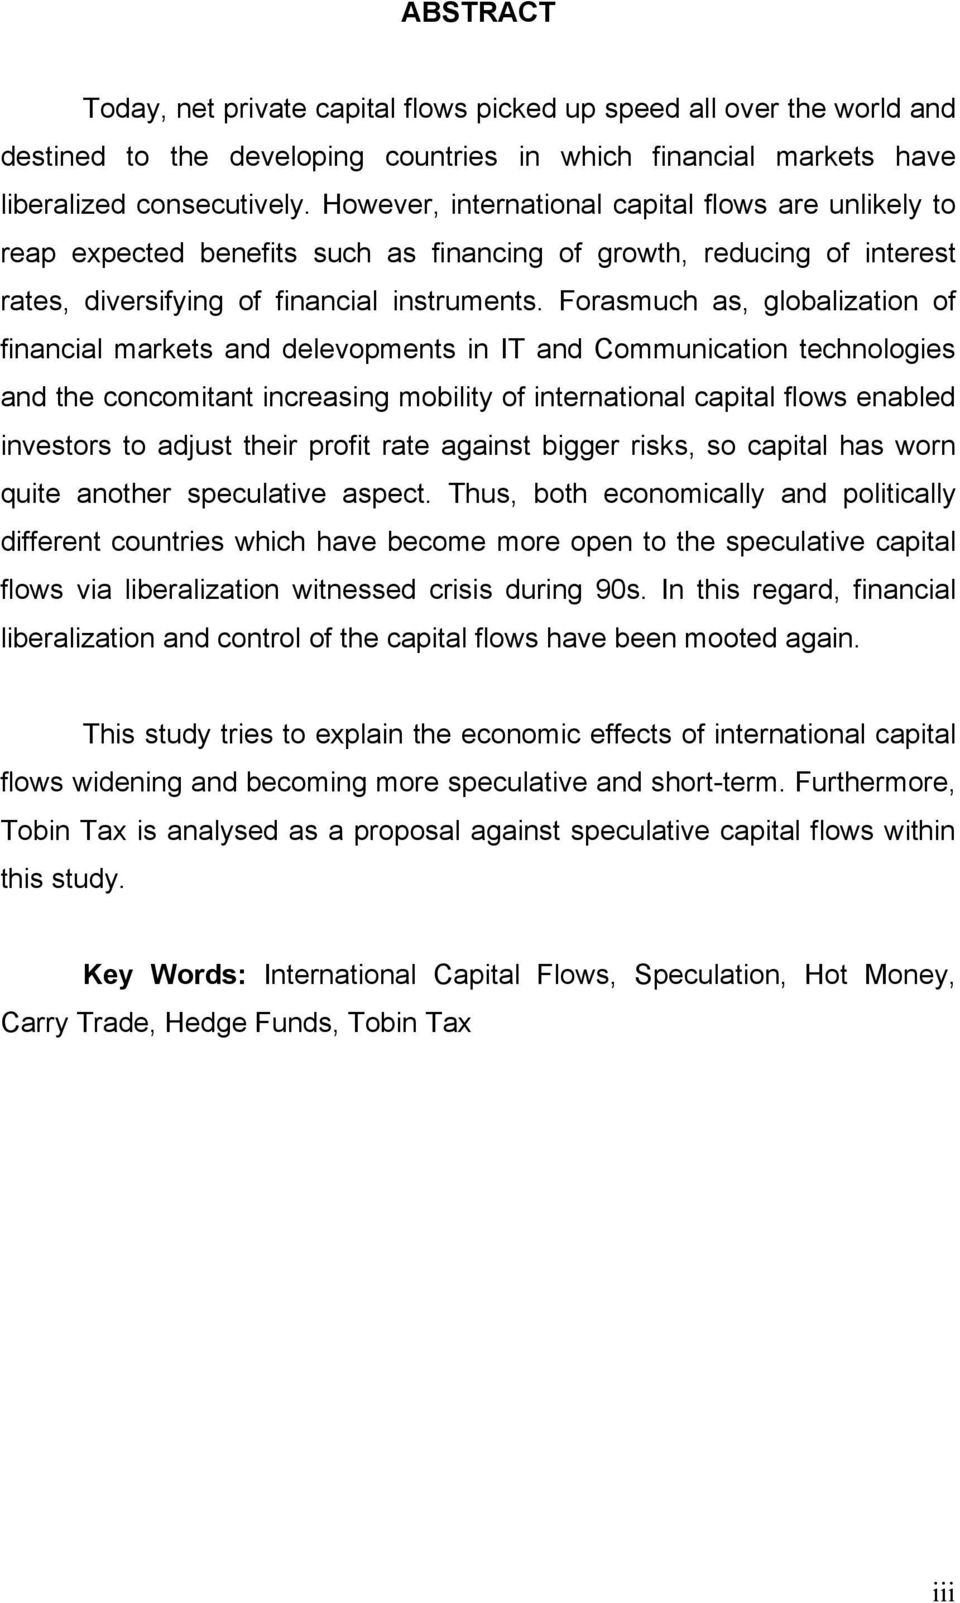 Forasmuch as, globalization of financial markets and delevopments in IT and Communication technologies and the concomitant increasing mobility of international capital flows enabled investors to